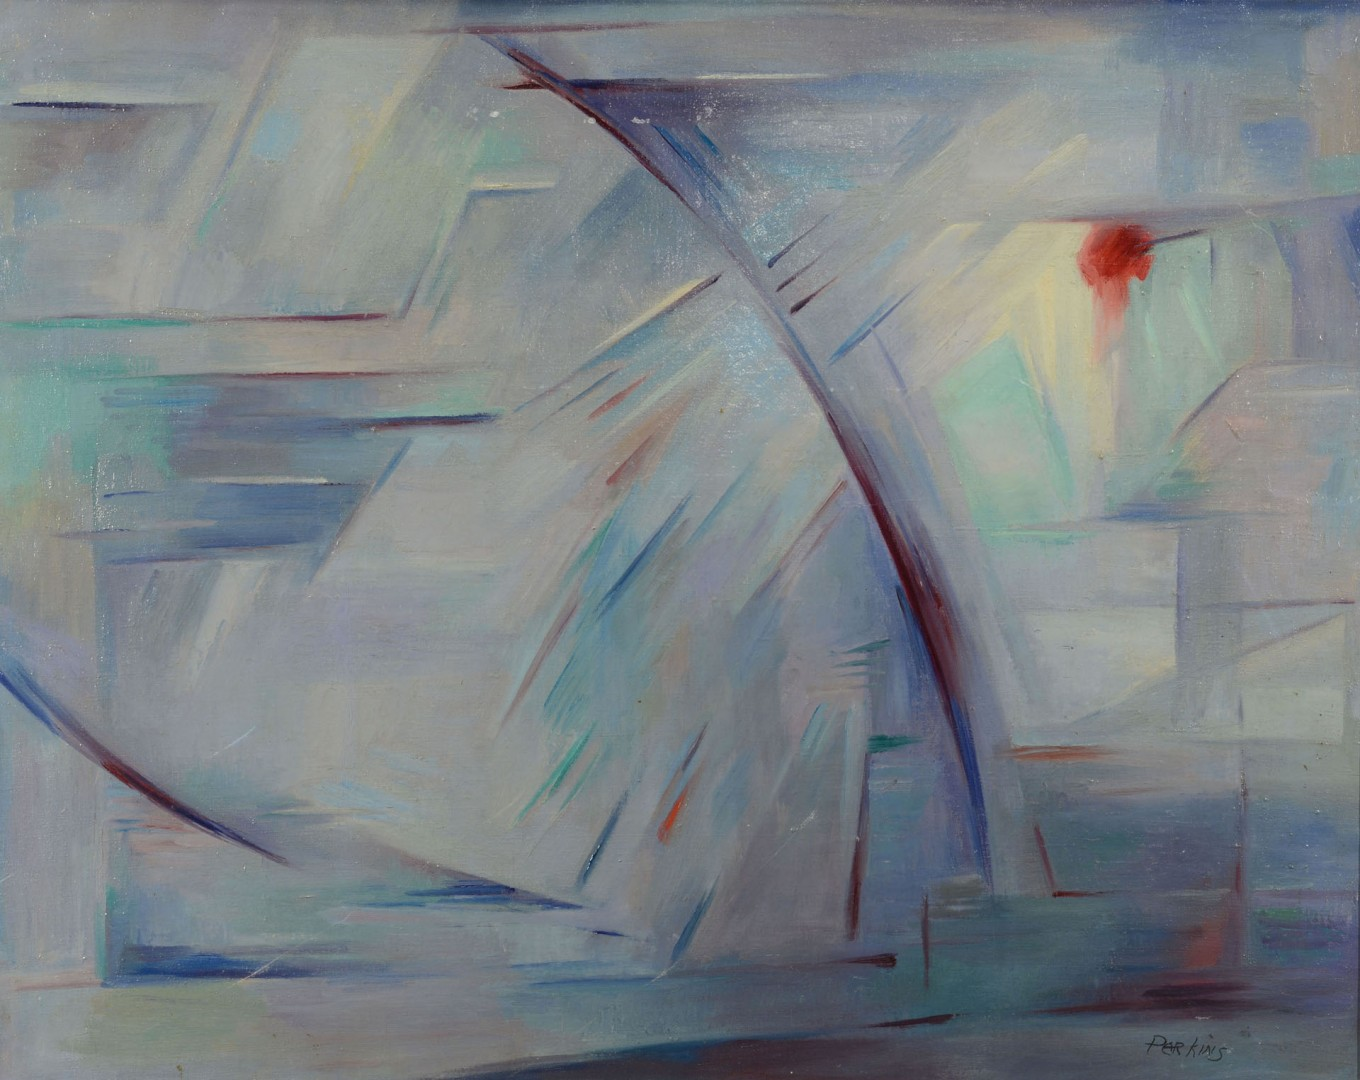 Philip Perkins, abstract oil on canvas